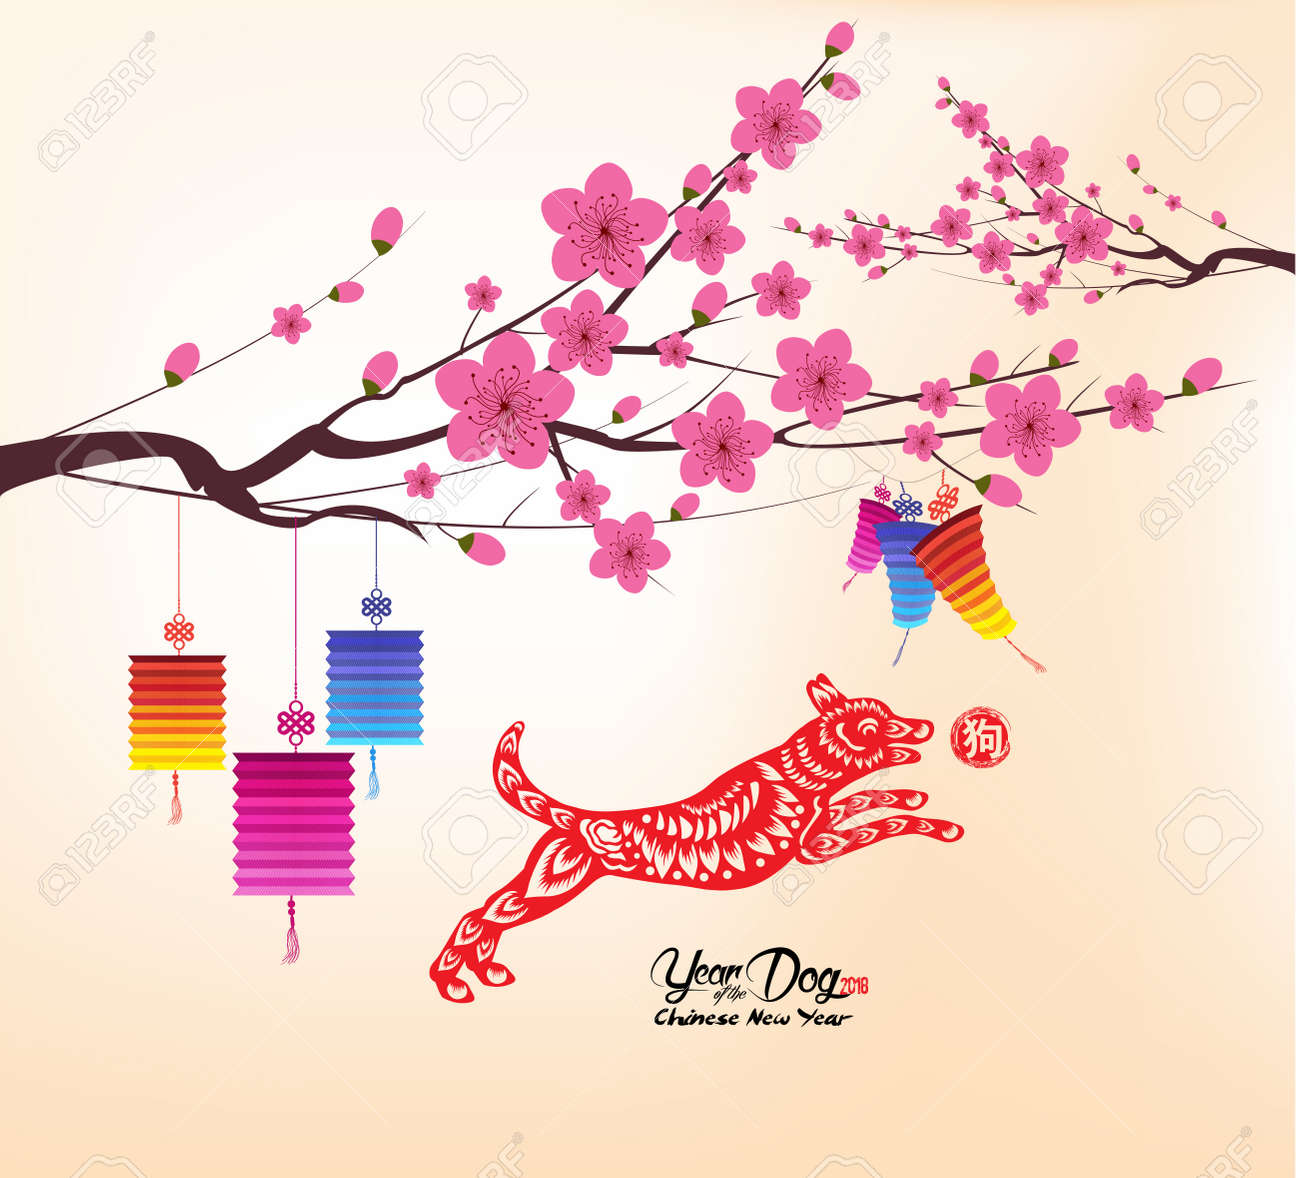 Chinese New Year 2018 Background With Lantern And Plum Blossom Hieroglyph Dog